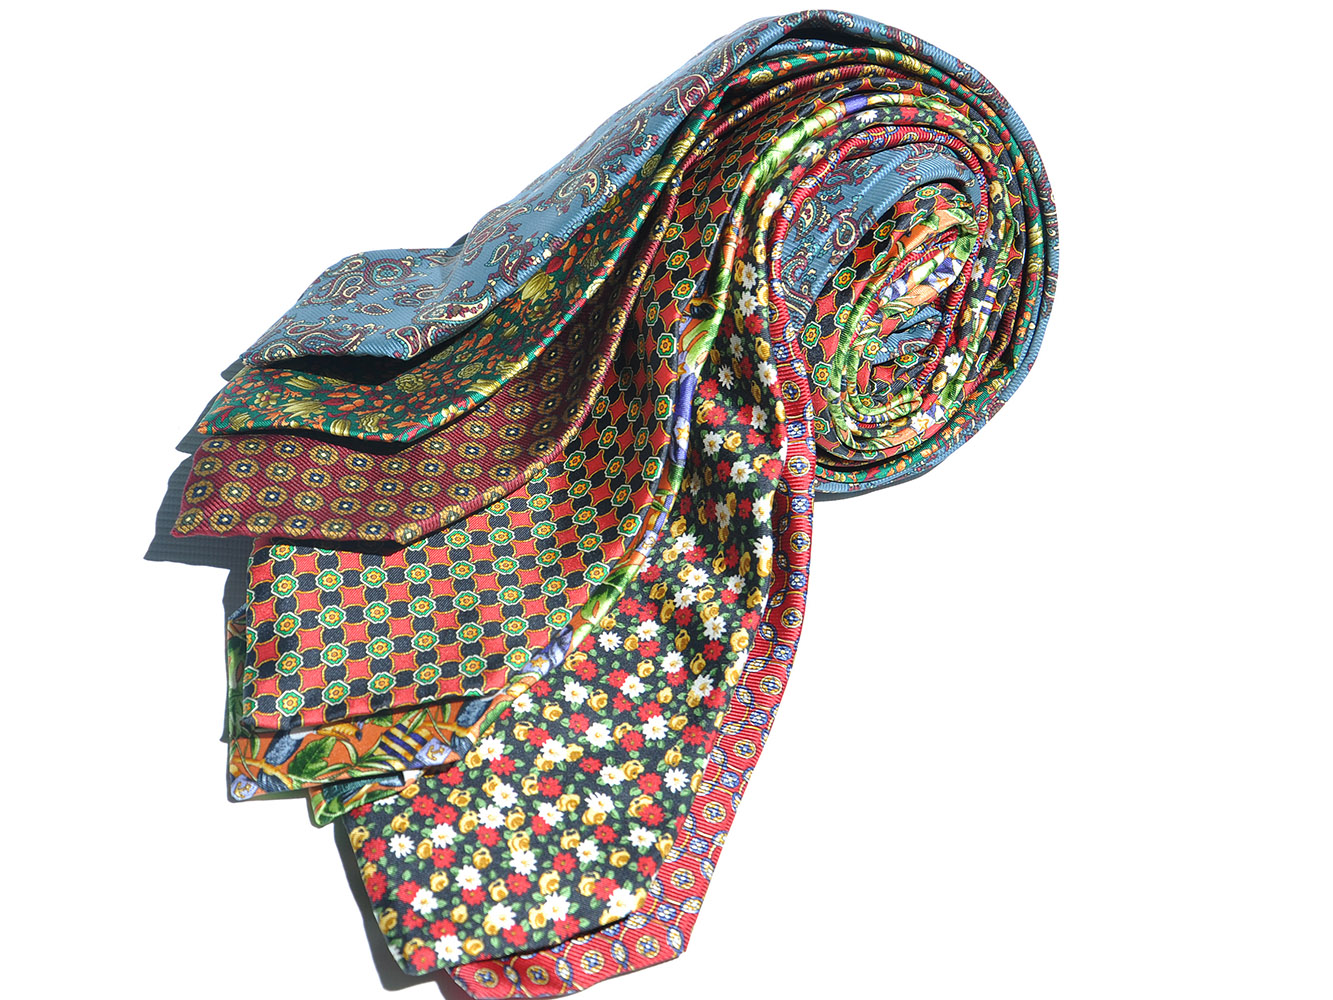 7 Piece Silk Tie Sets